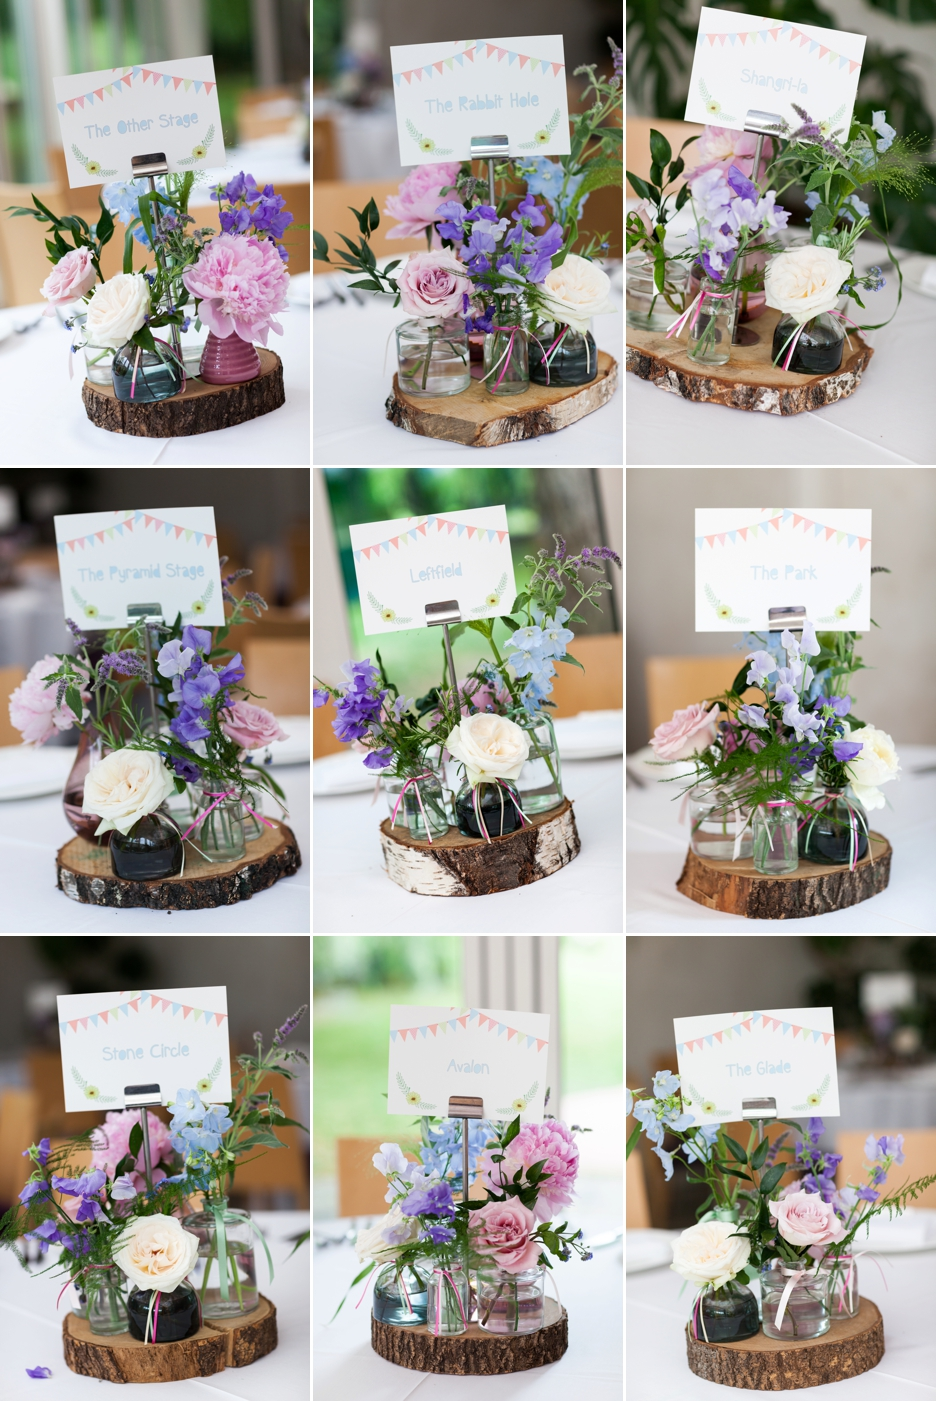 Wedding photography at Ridge Farm Studios, Dorking, Surrey. Flowers & table decorations.